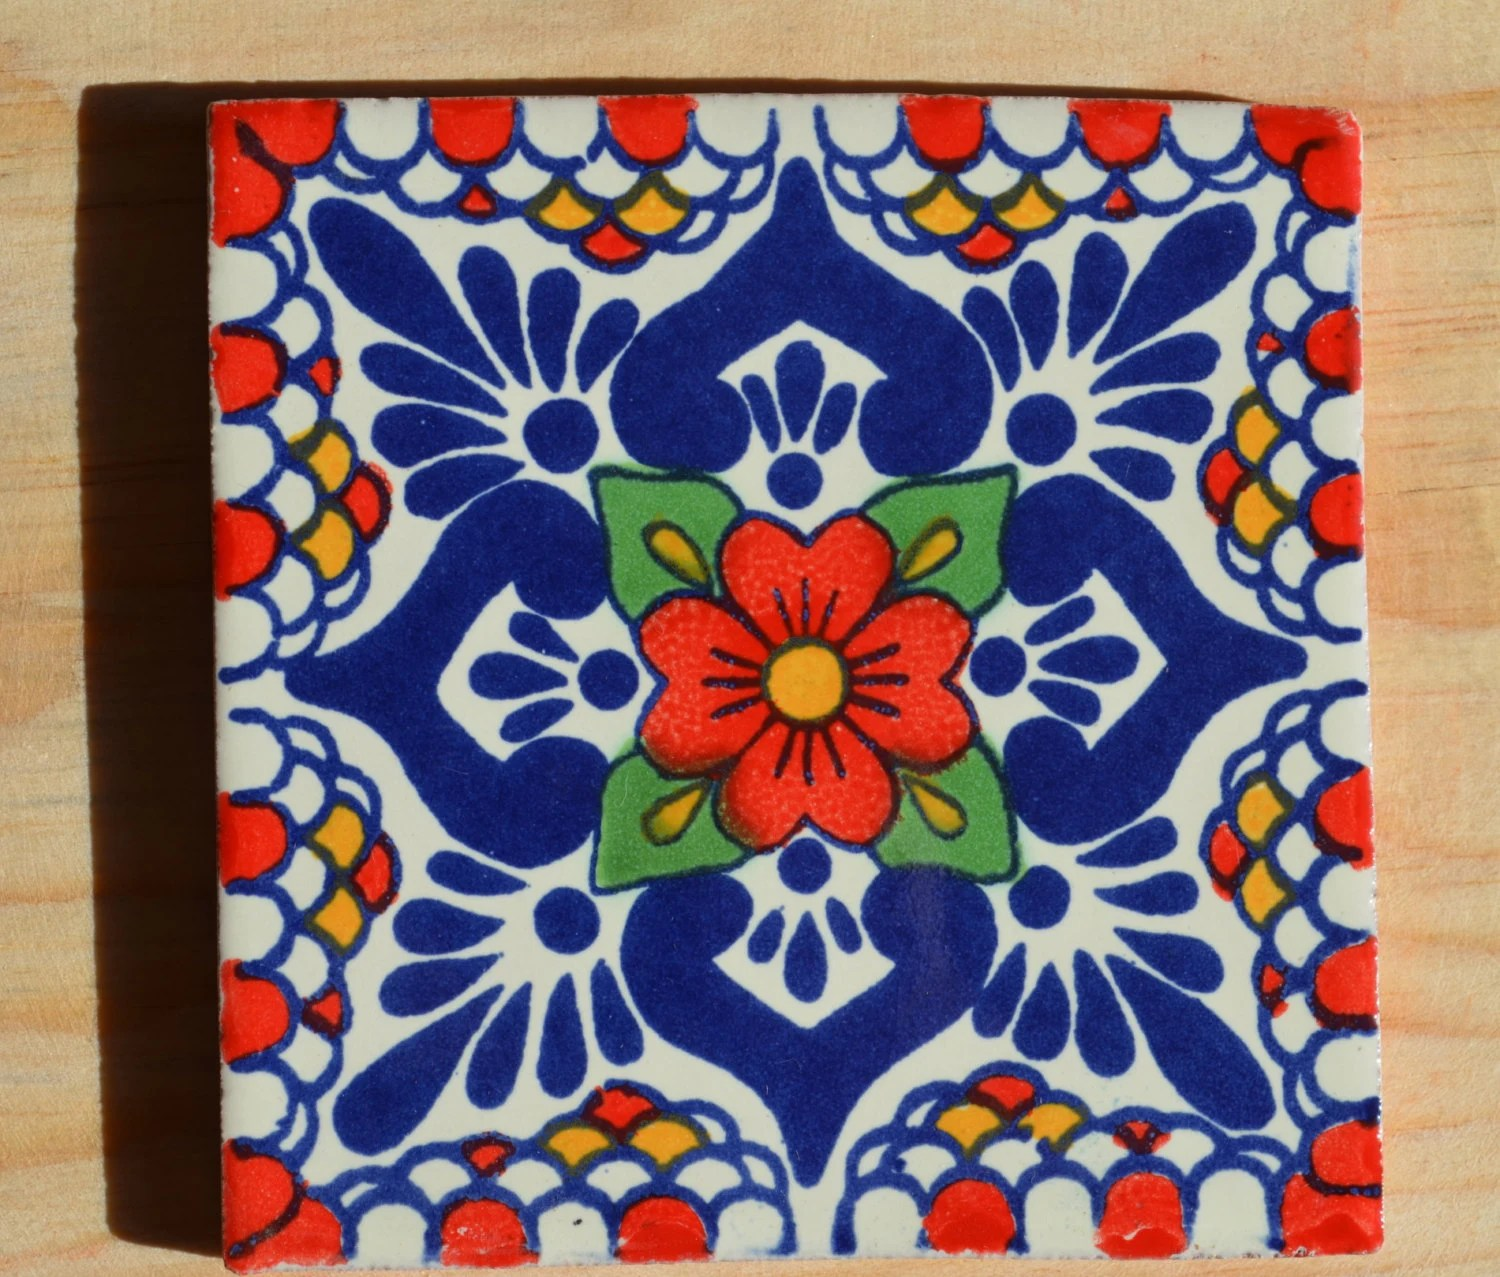 90 Mexican tiles hand painted